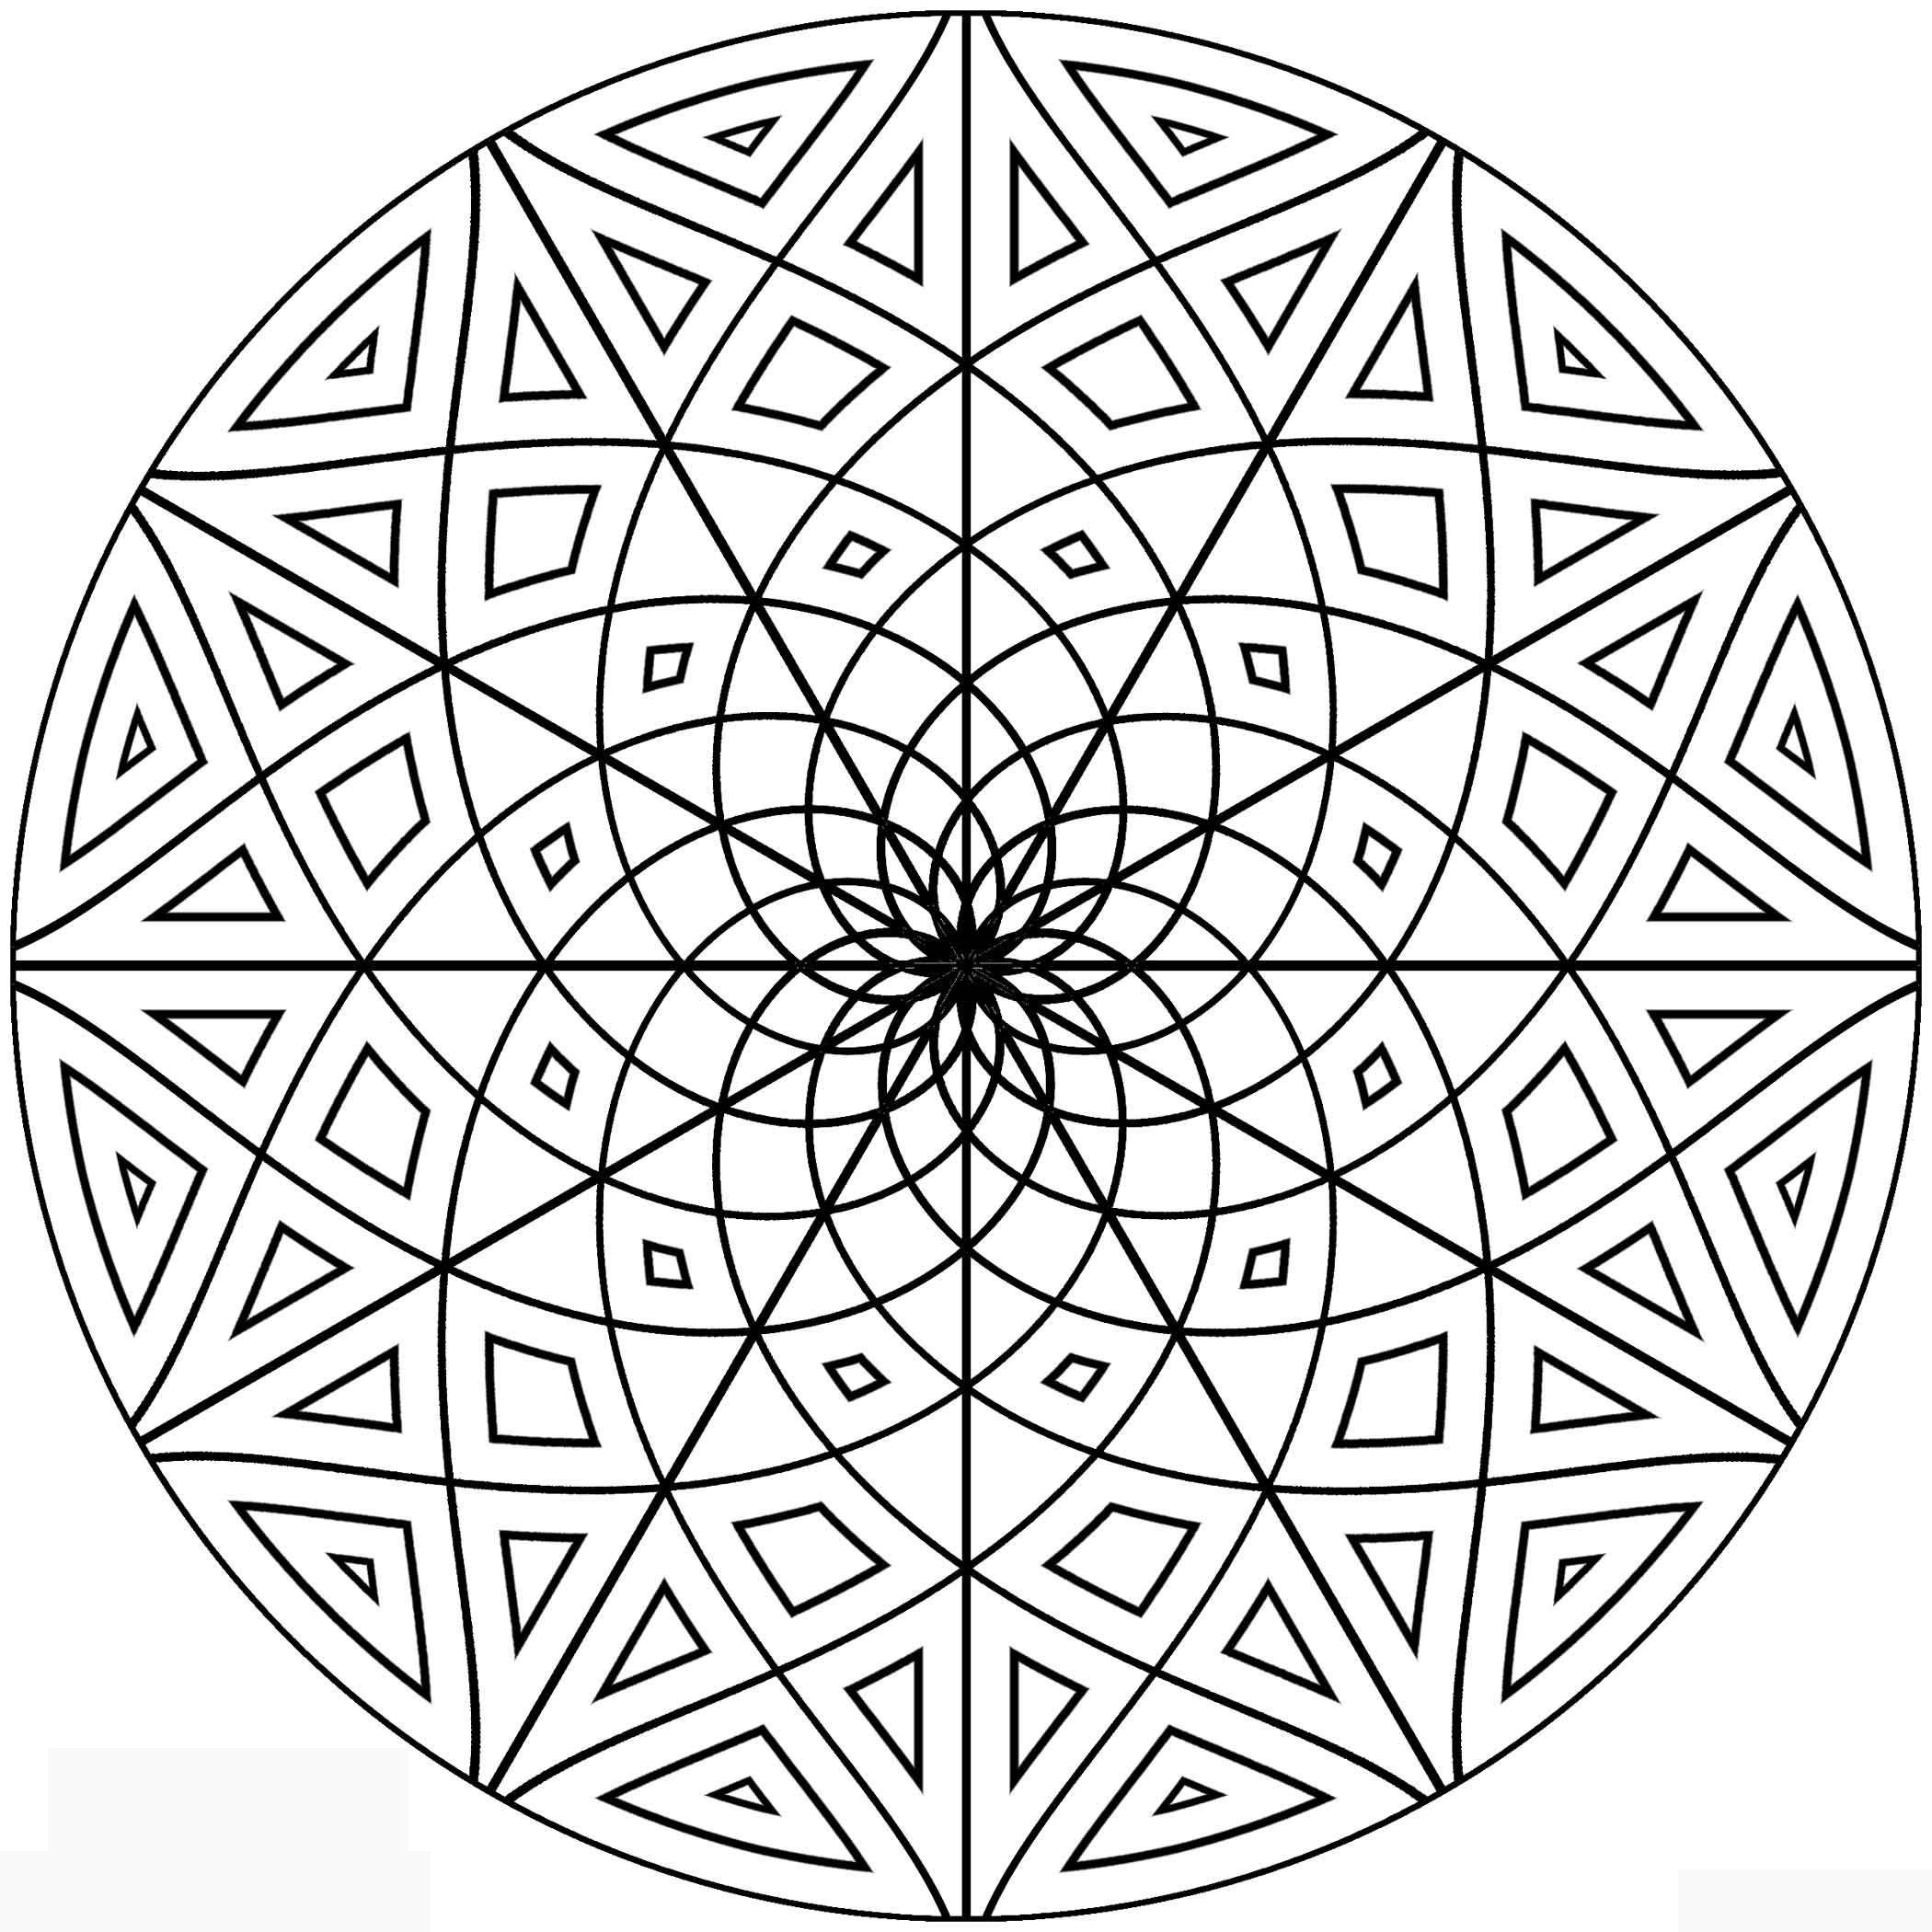 2100x2100 For Symmetrical Coloring Pages